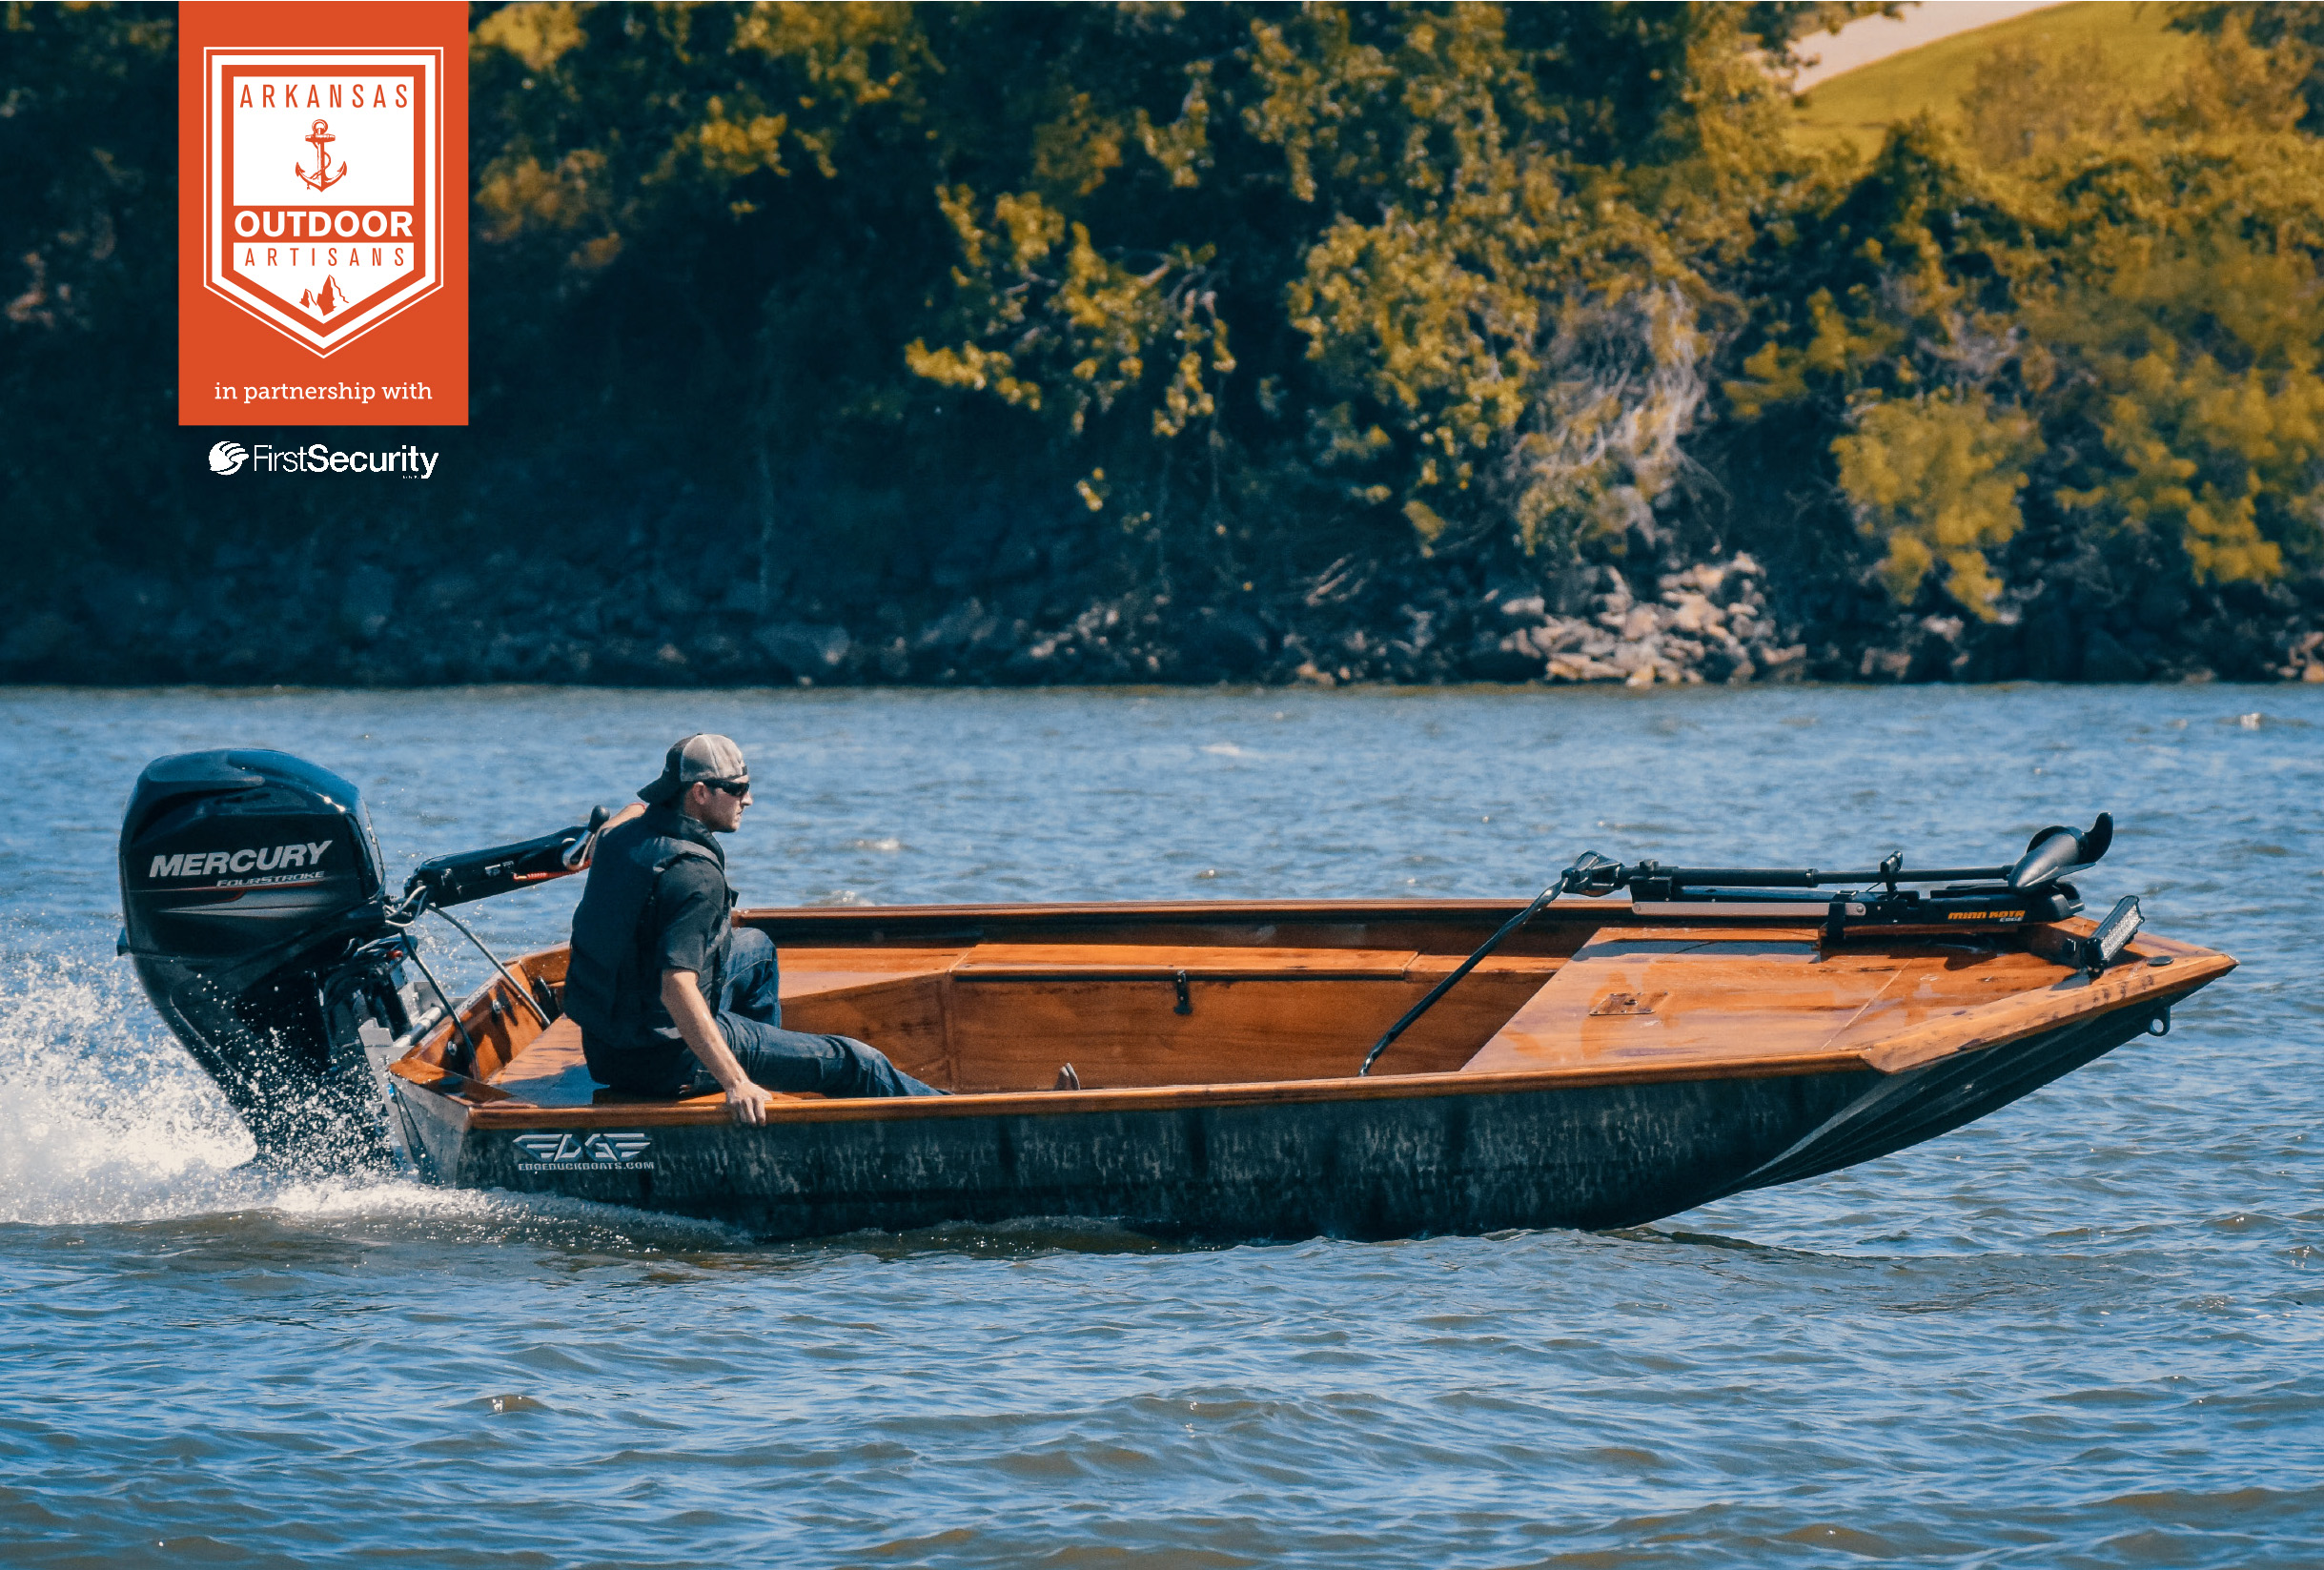 An Edge duck boat from Waco Manufacturing speeds down the Arkansas River. Each handmade boat can be customized in a number of ways, such as this model's custom-painted interior, designed to mimic an intricate and detailed wood grain pattern.